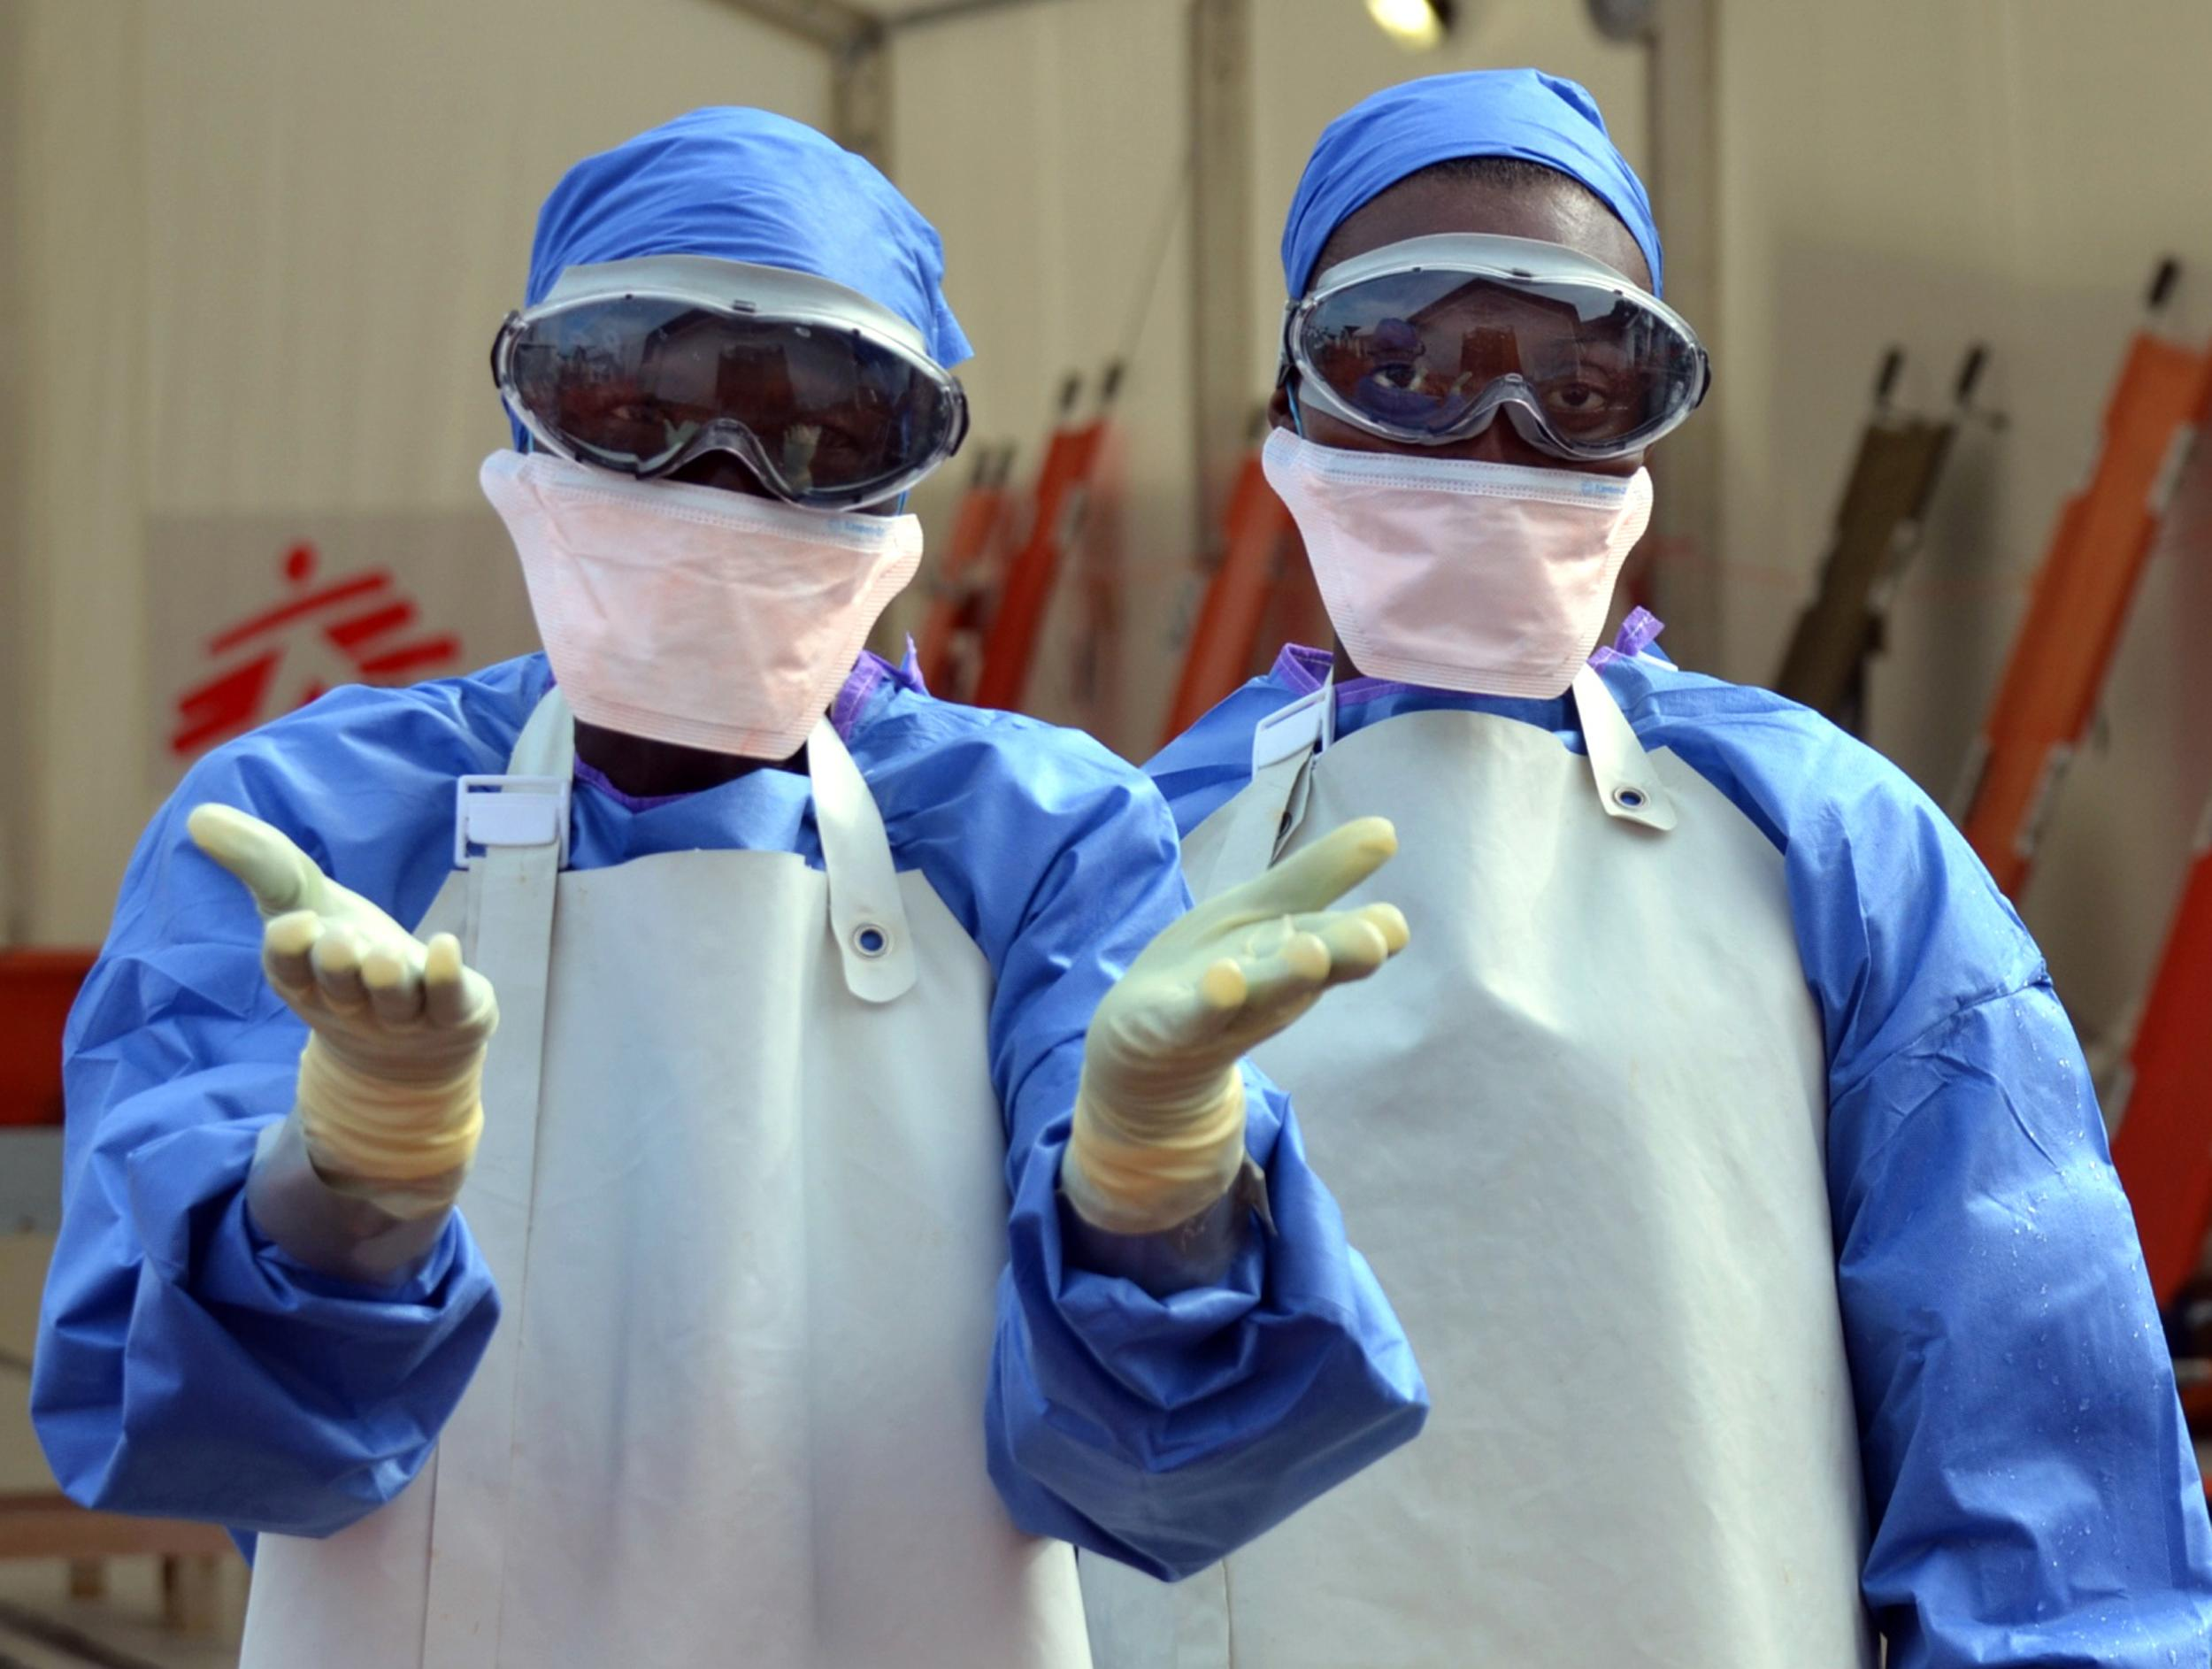 The World Health Organization (WHO) says close to 5,000 people have died from Ebola as the number of infections soars to almost 10,000 (AFP Photo/Zoom Dosso)